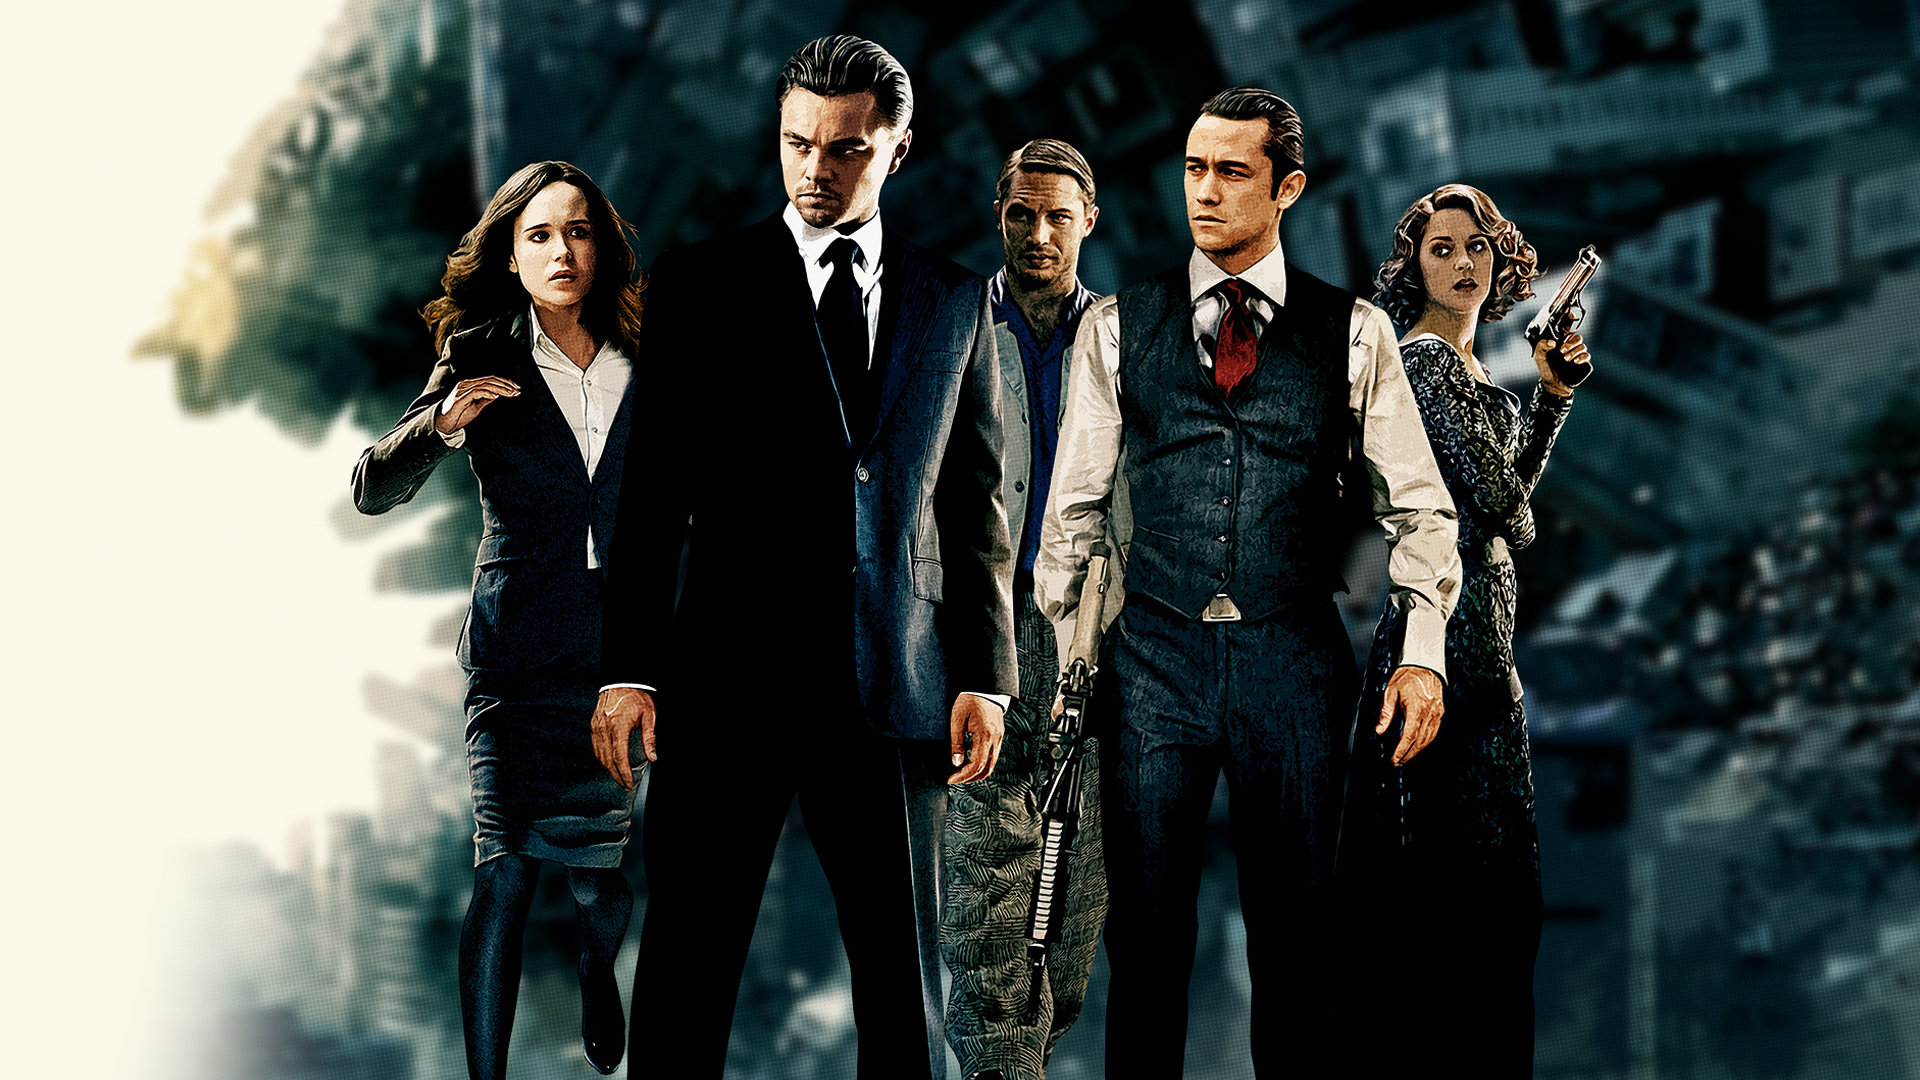 movies Inception quotes free desktop backgrounds and